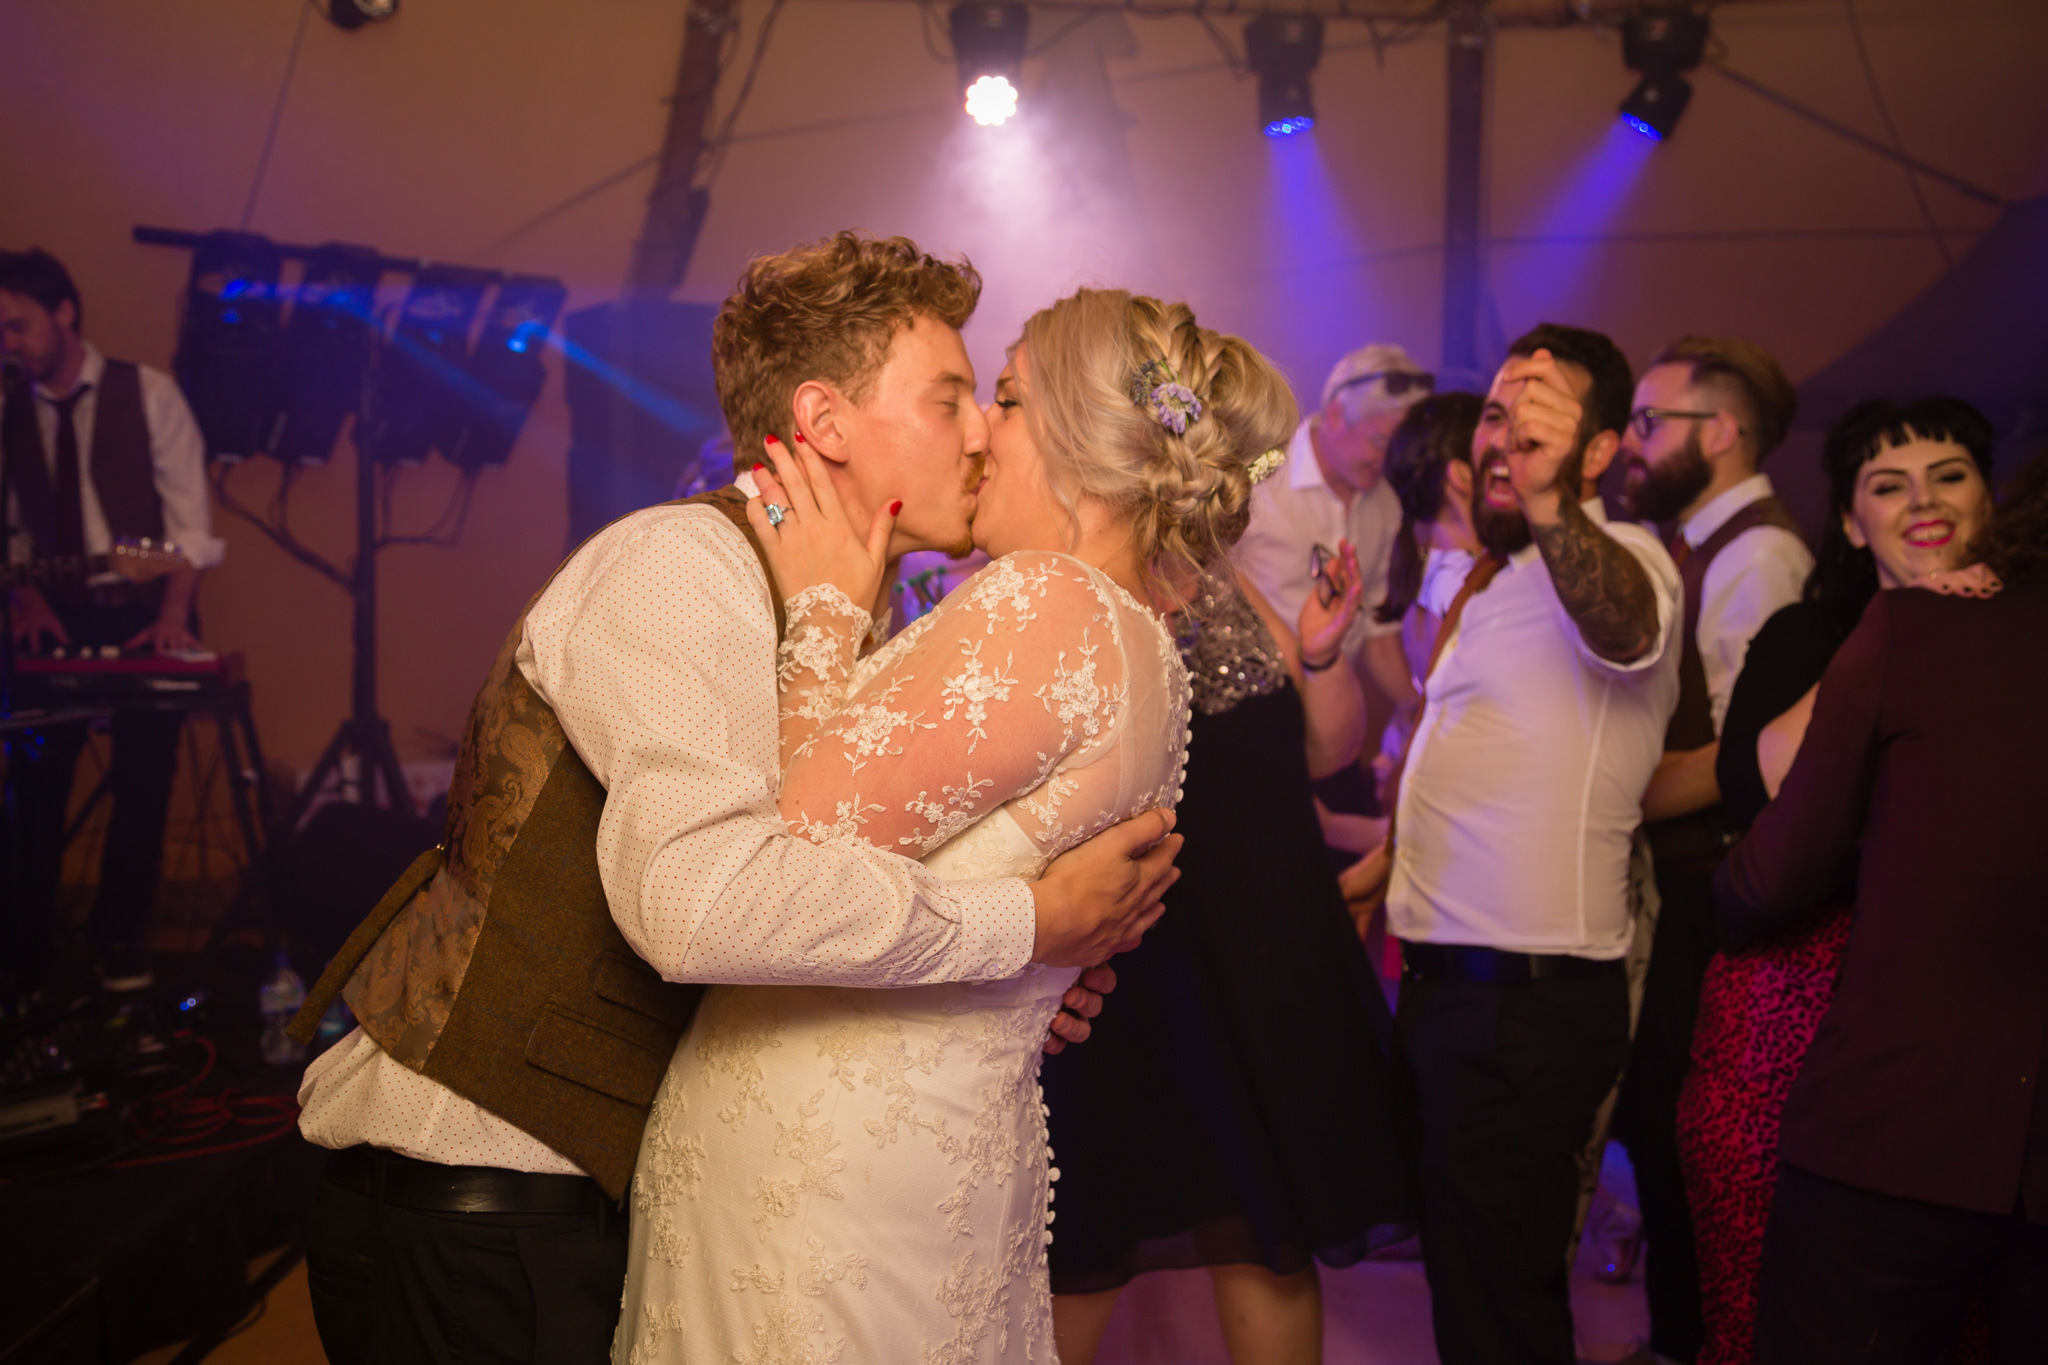 The bride and groom kiss during the first dance